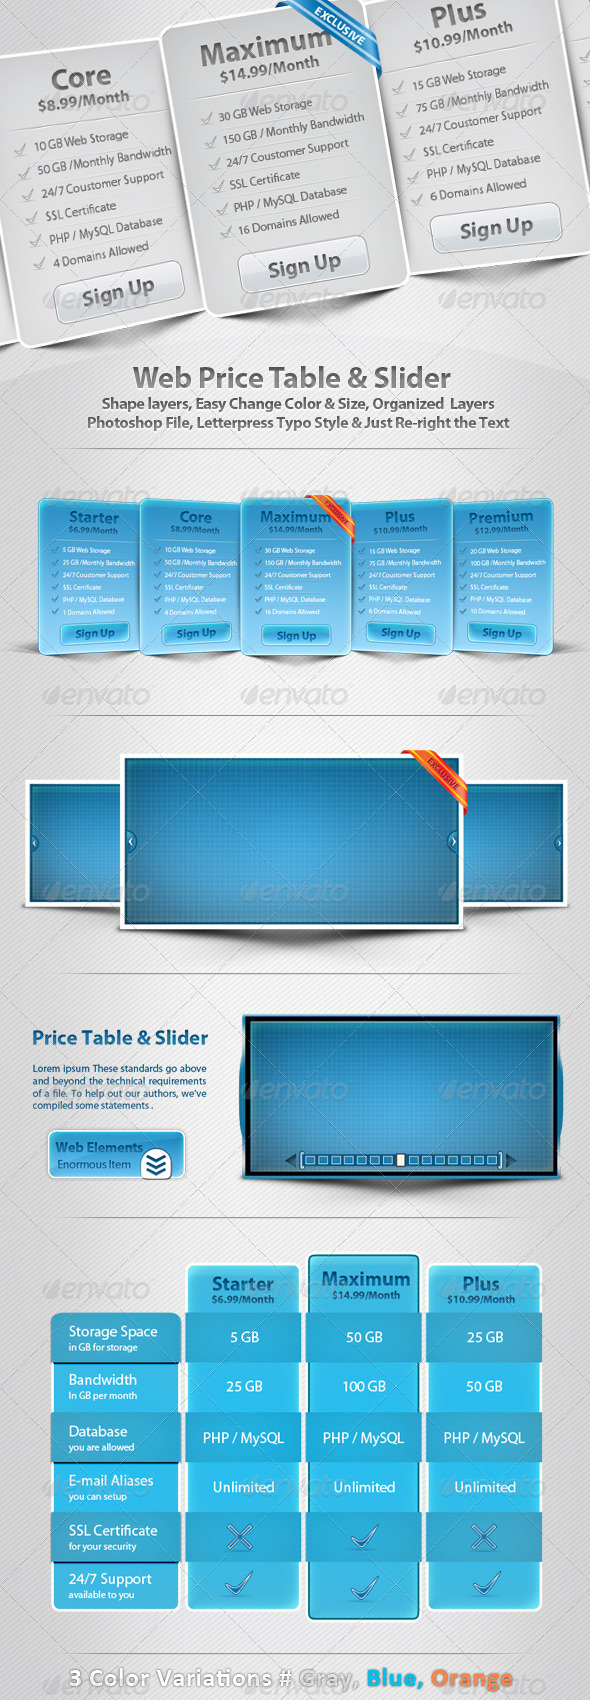 Web Price Table & Slider - Sliders & Features Web Elements